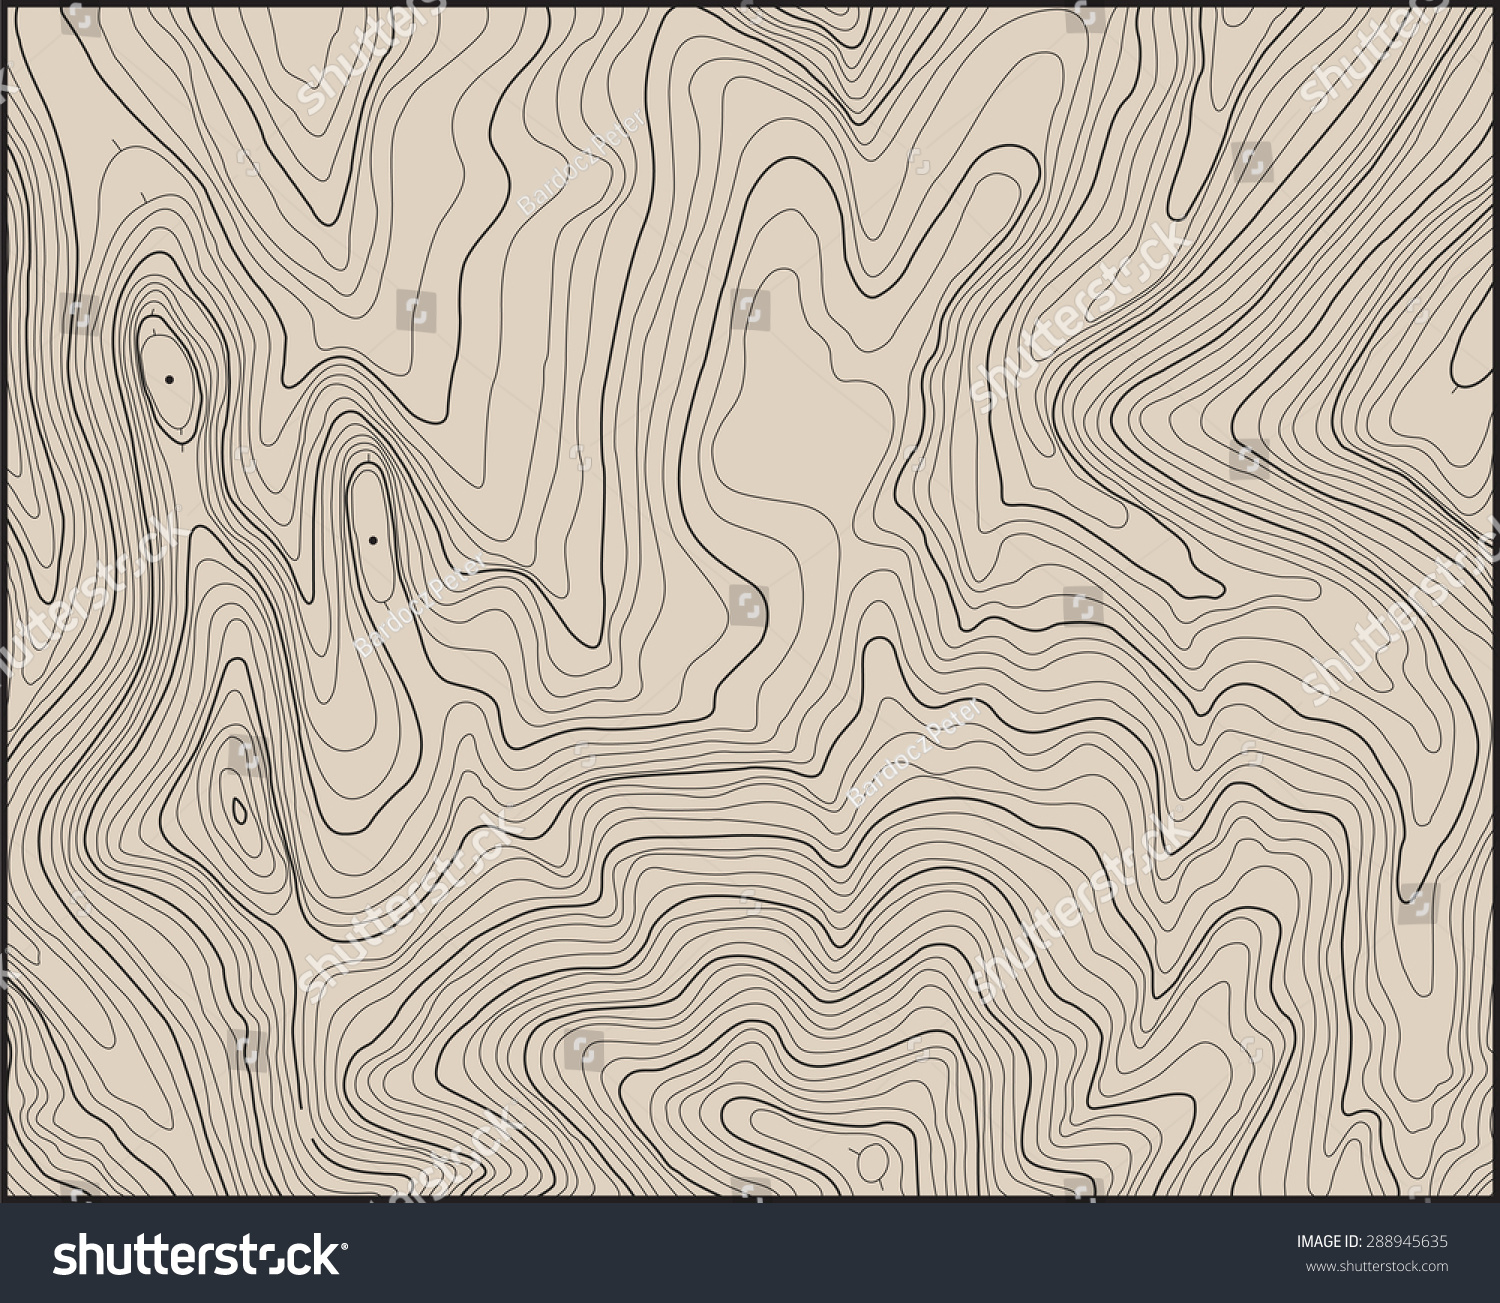 Topographic Map Contour Lines Stock Vector